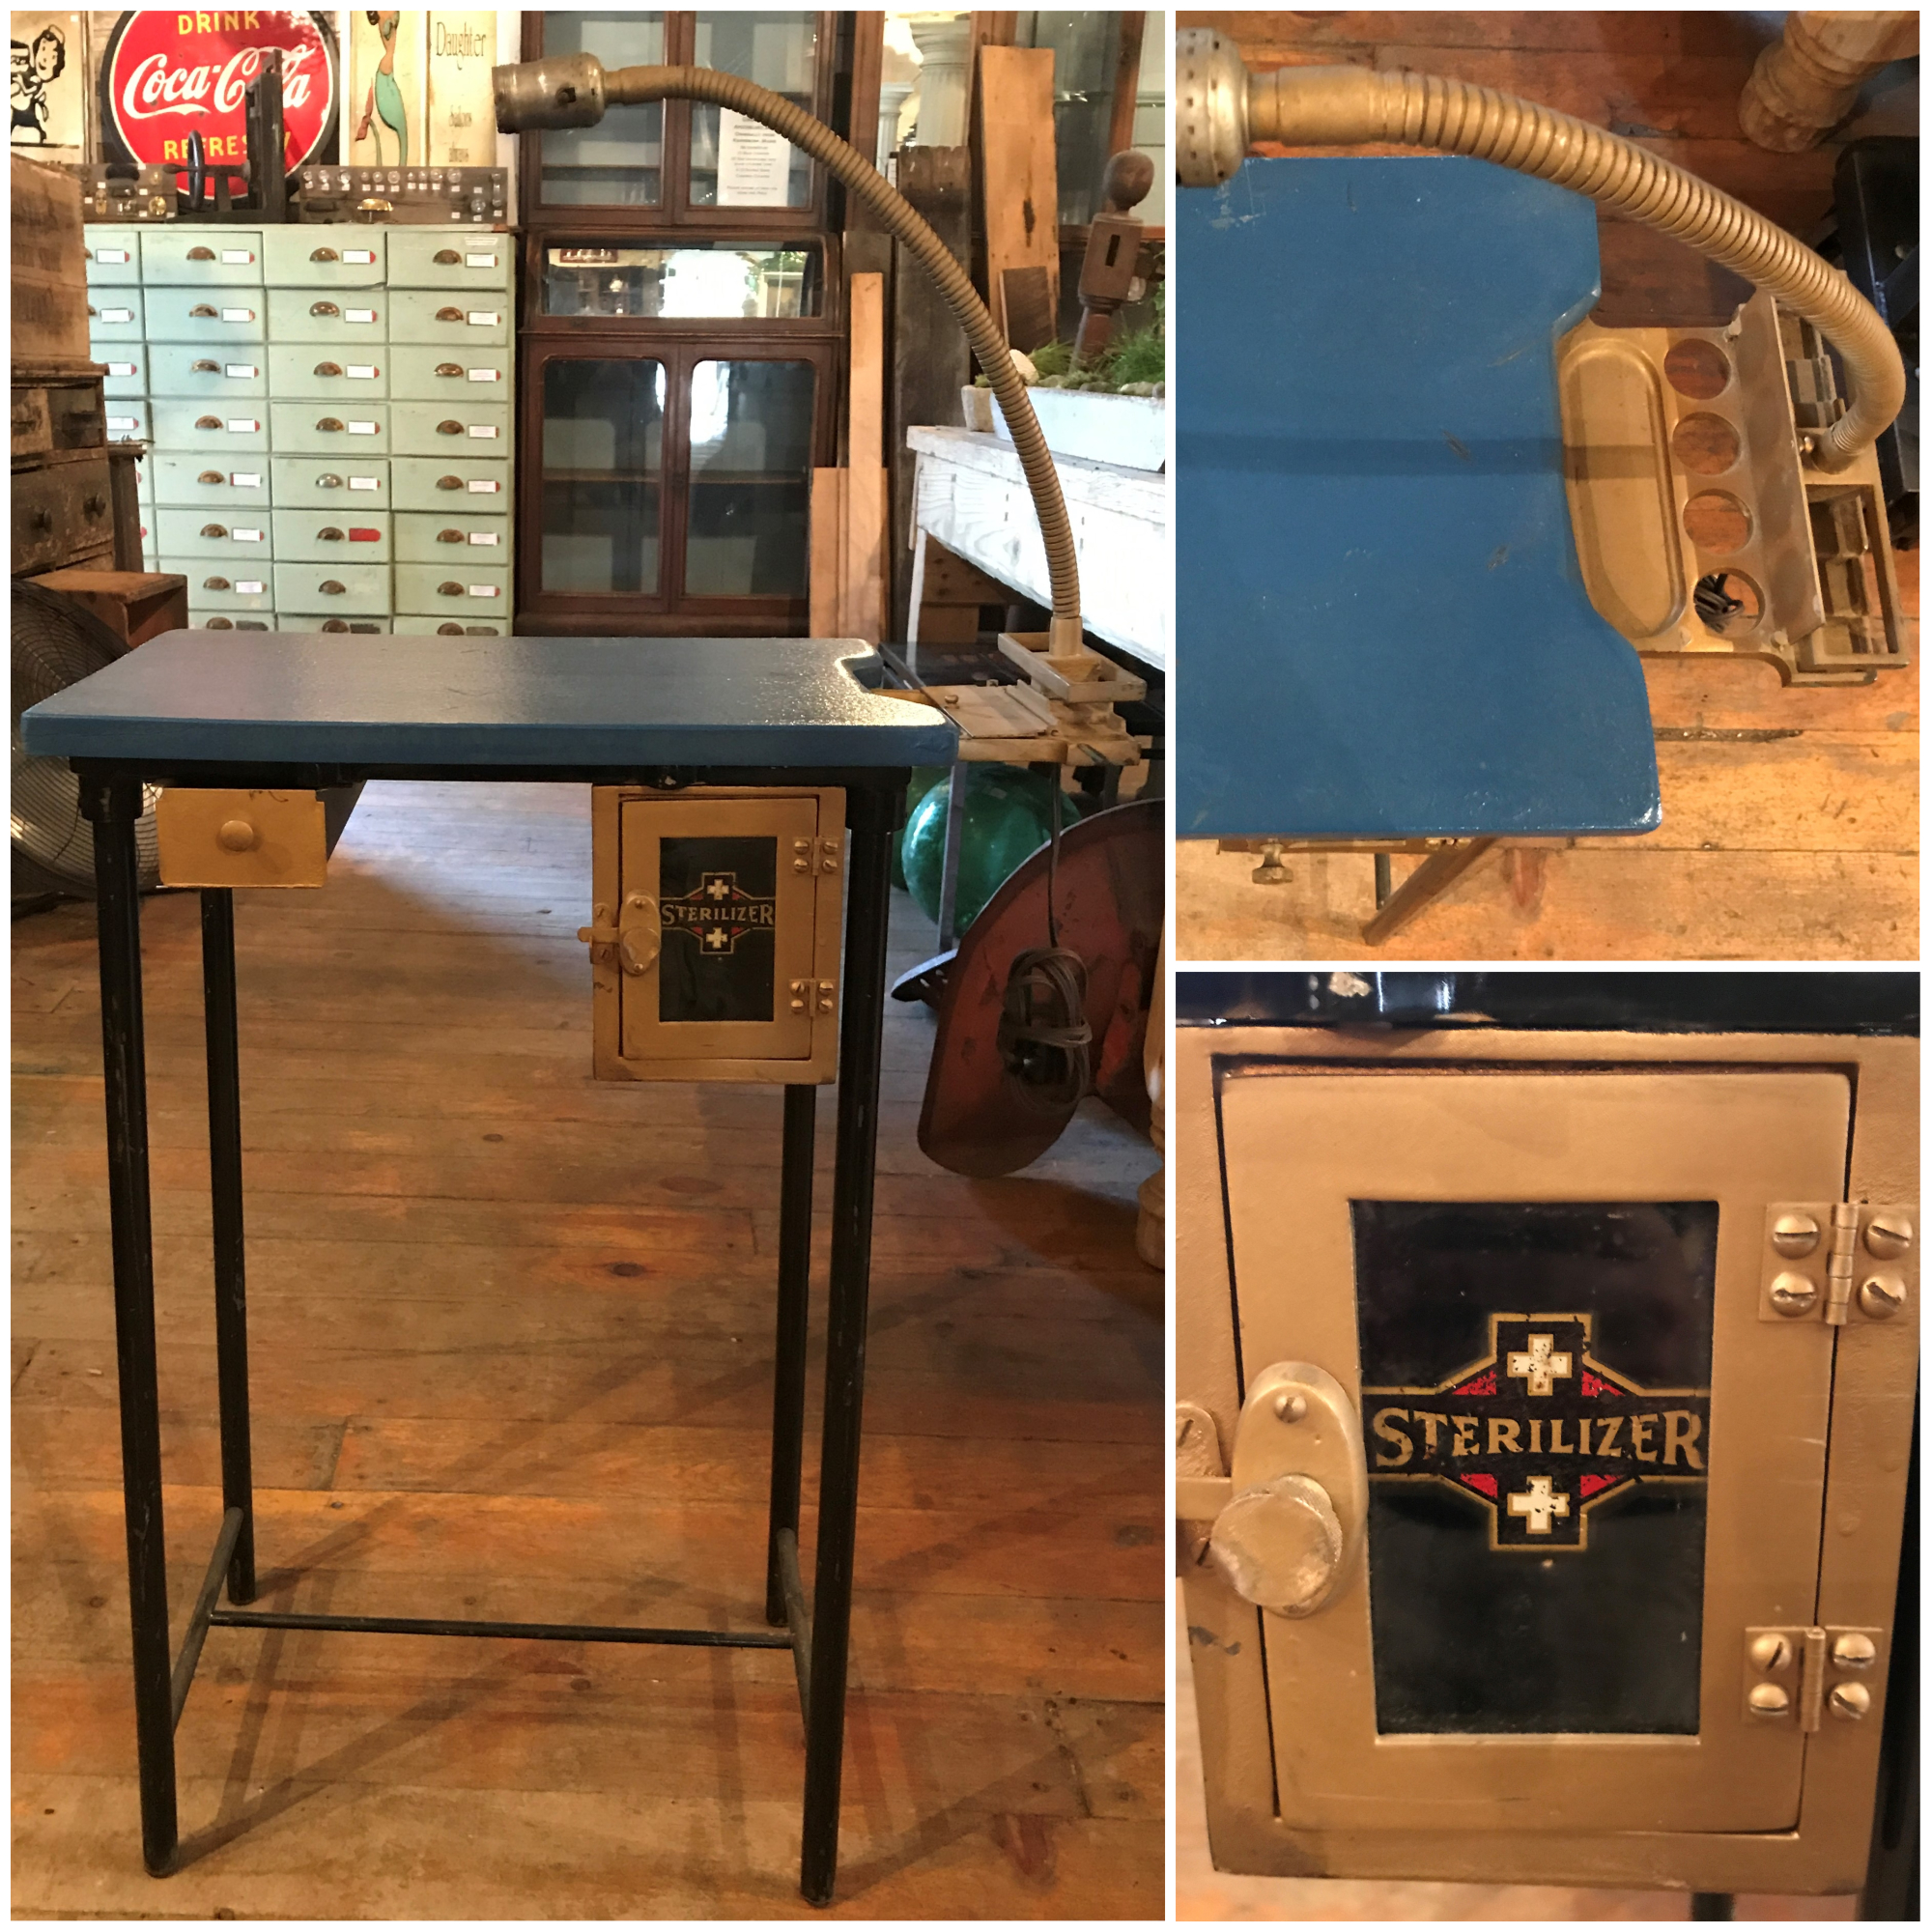 Cute Small Sterilizer Station Table with Light